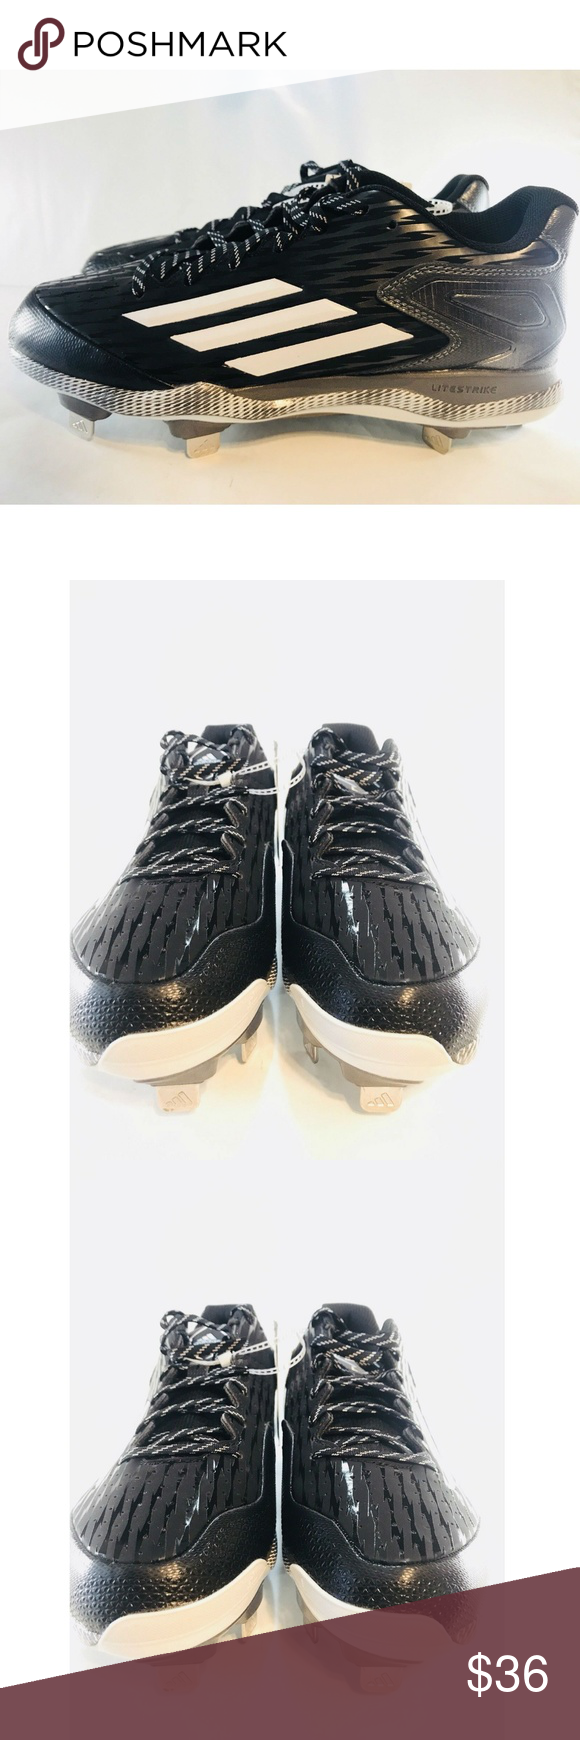 cheap for discount 01ae8 6eb18 Adidas Power Mens Baseball Cleats Performance 8 Brand NEW, box NOT  included, pair of